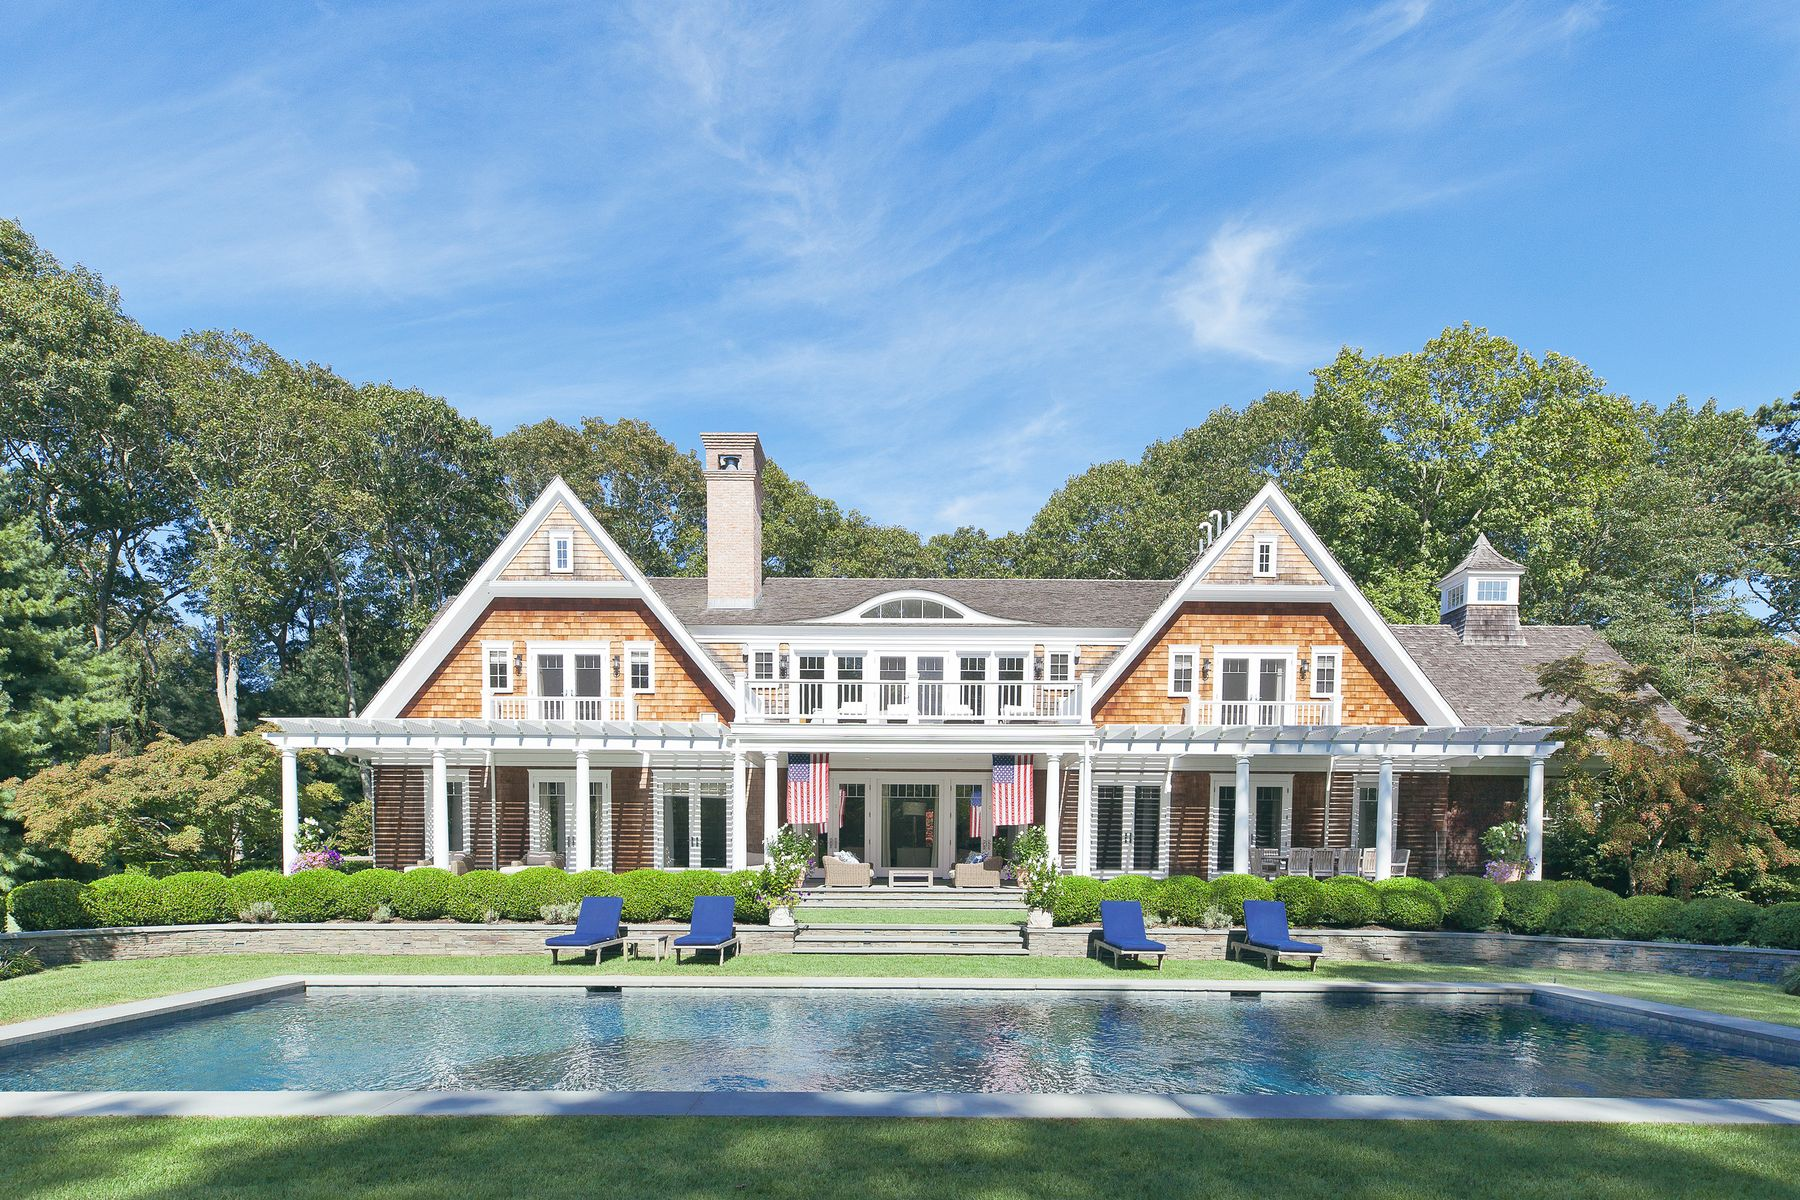 Single Family Homes for Active at Georgica Estate 10 Jones Cove Road East Hampton, New York 11937 United States